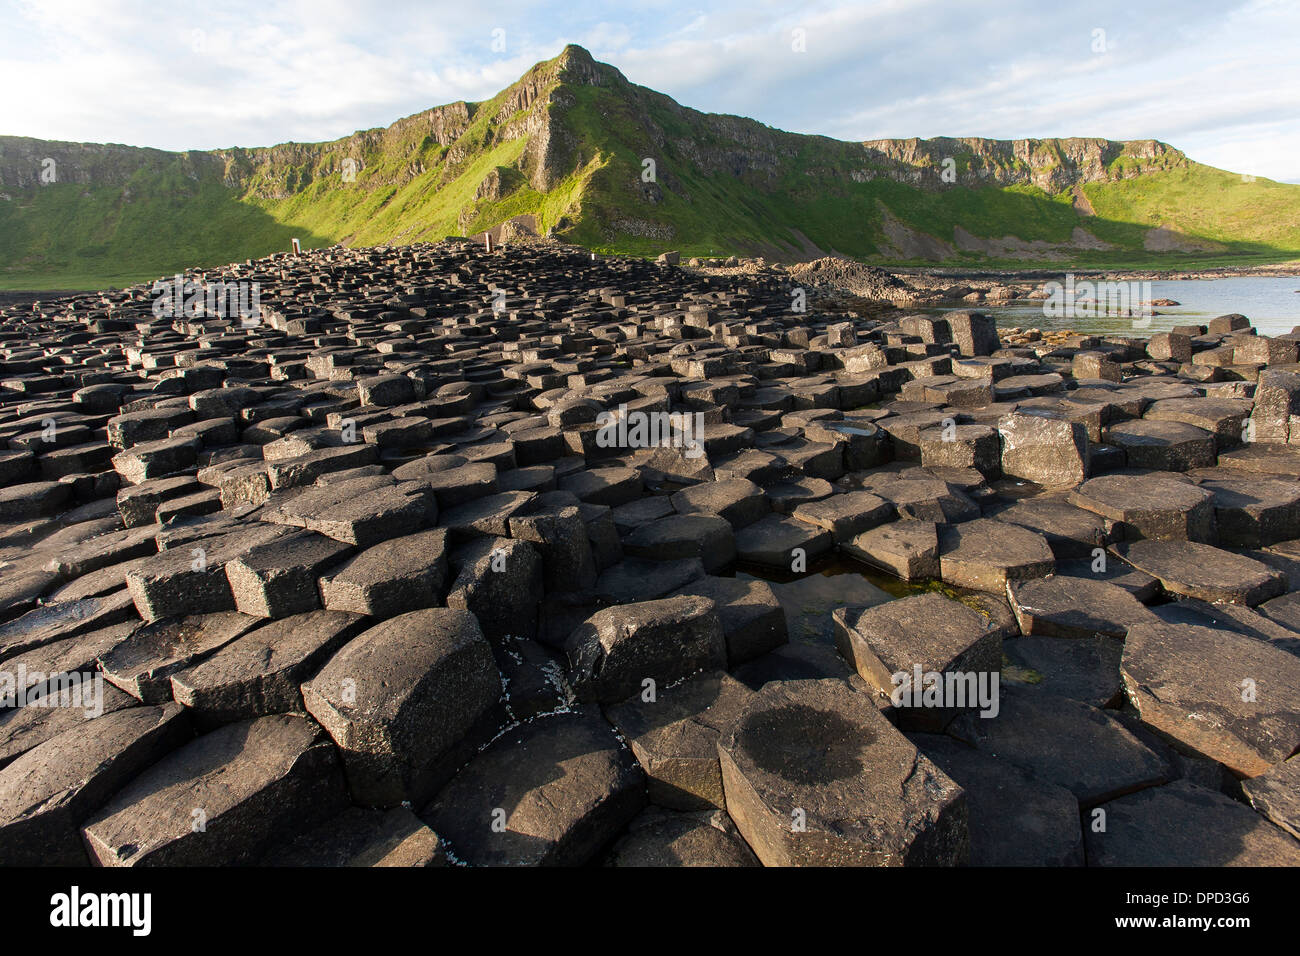 A wide view of the basalt columns that make up the world famous Giants Causeway in County Antrim and close by coastline. - Stock Image